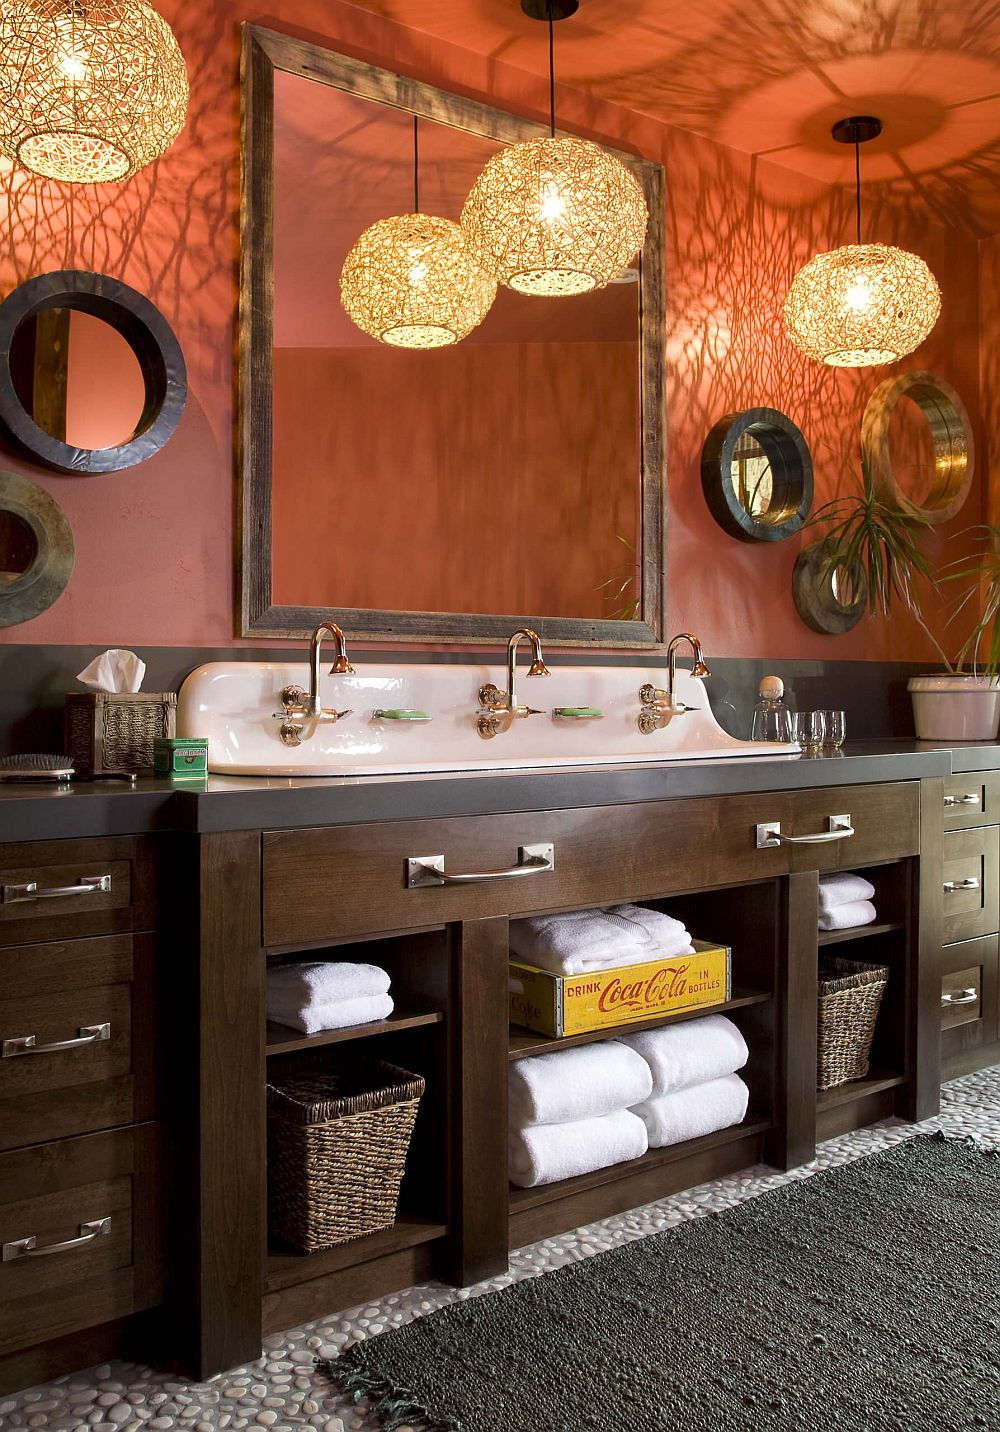 Lighting adds a brilliant appeal to the bathroom in orange